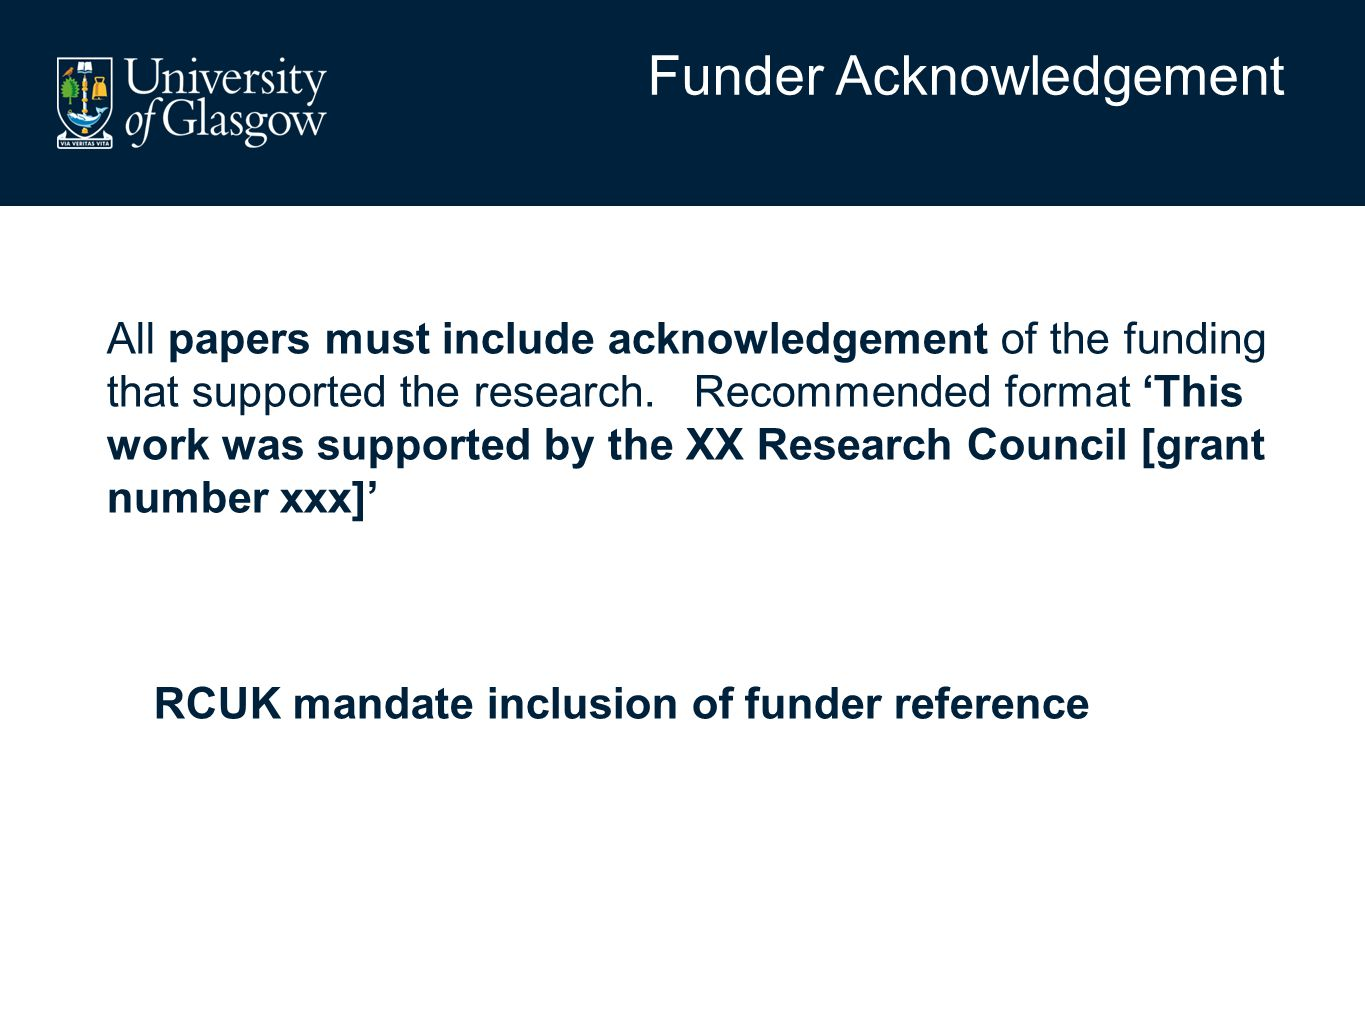 All papers must include acknowledgement of the funding that supported the research.